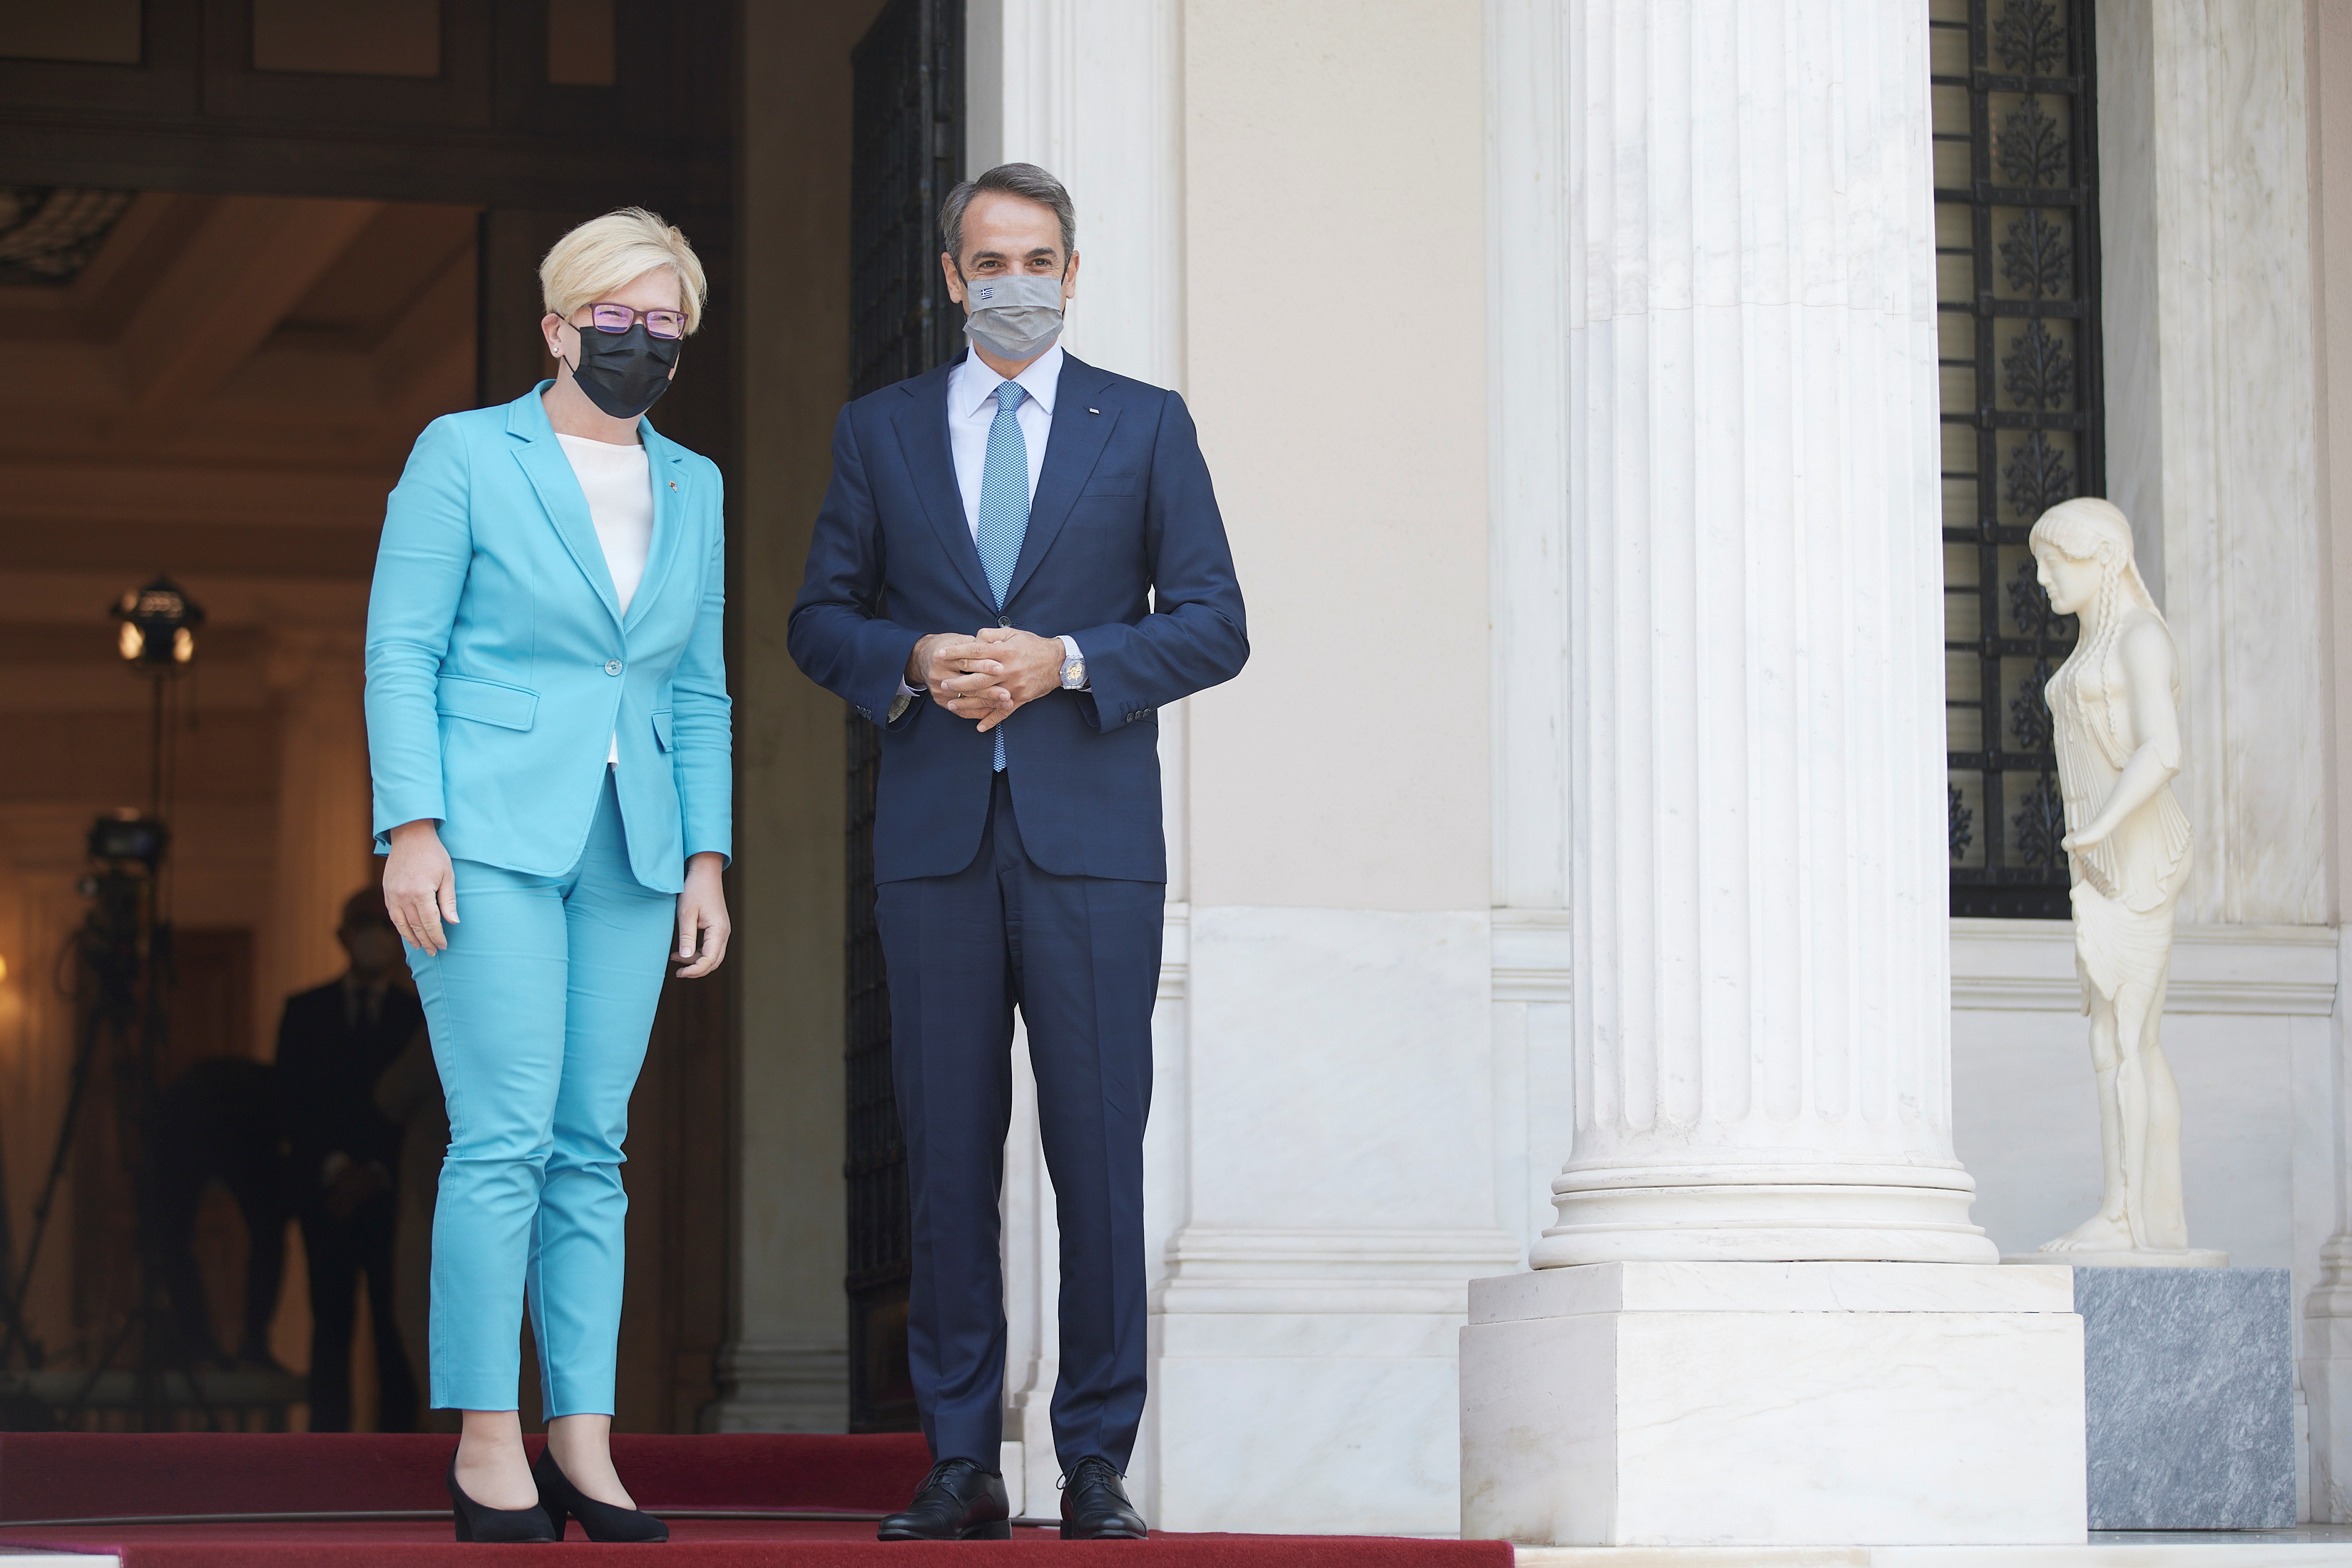 Greek Prime Minister Kyriakos Mitsotakis welcomes his Lithuanian counterpart Ingrida Simonyte at the Maximos Mansion in Athens, Greece, July 15, 2021. Dimitris Papamitsos/Greek Prime Minister's Office/Handout via REUTERS